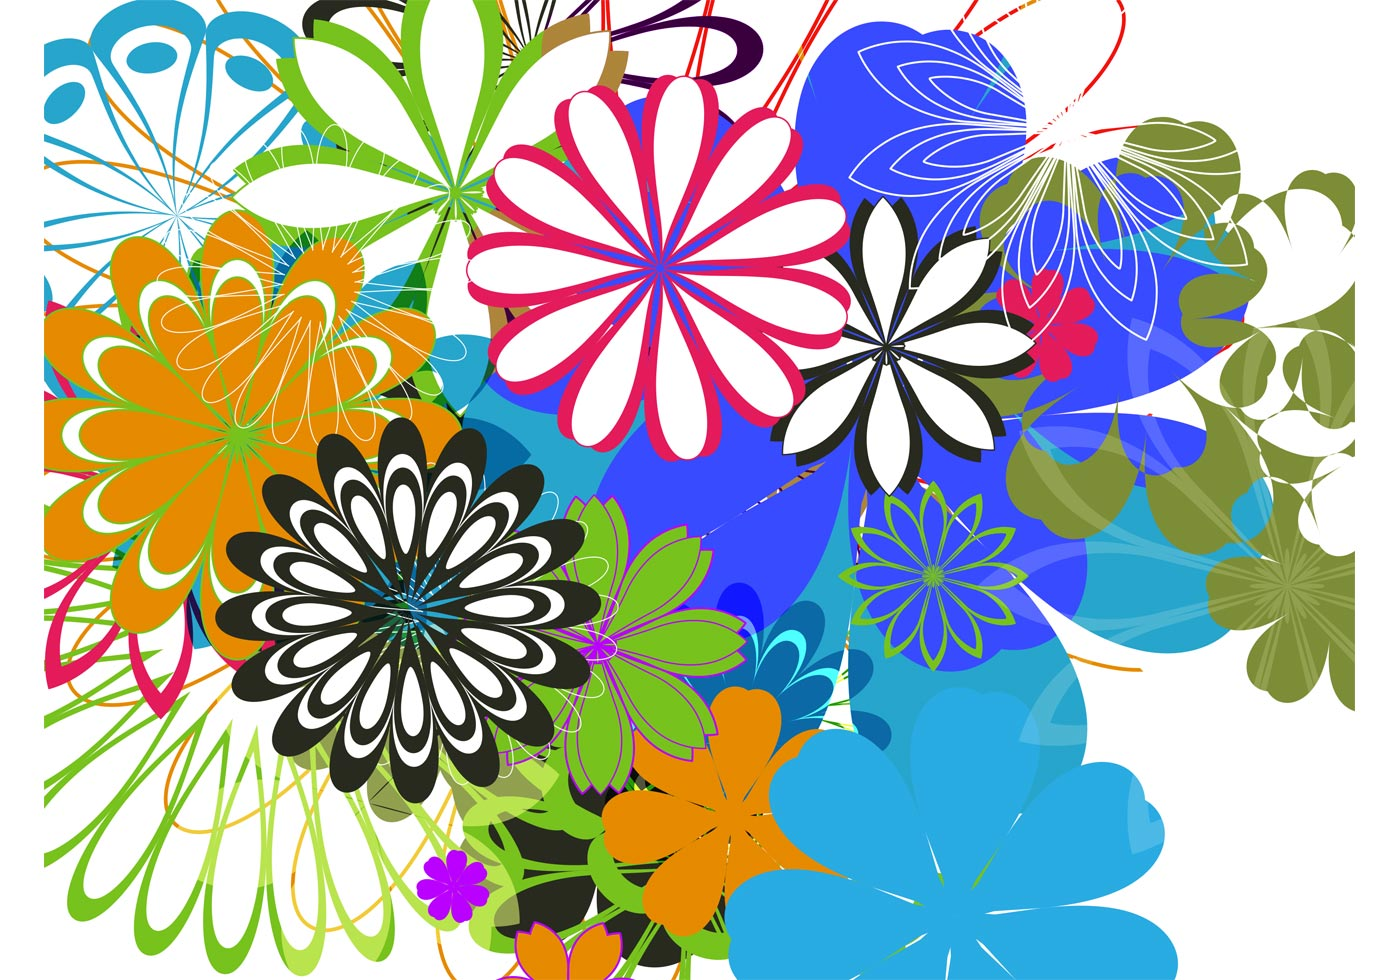 Free Colorful Flower Wallpaper Downloads: Colorful Flowers Background Art